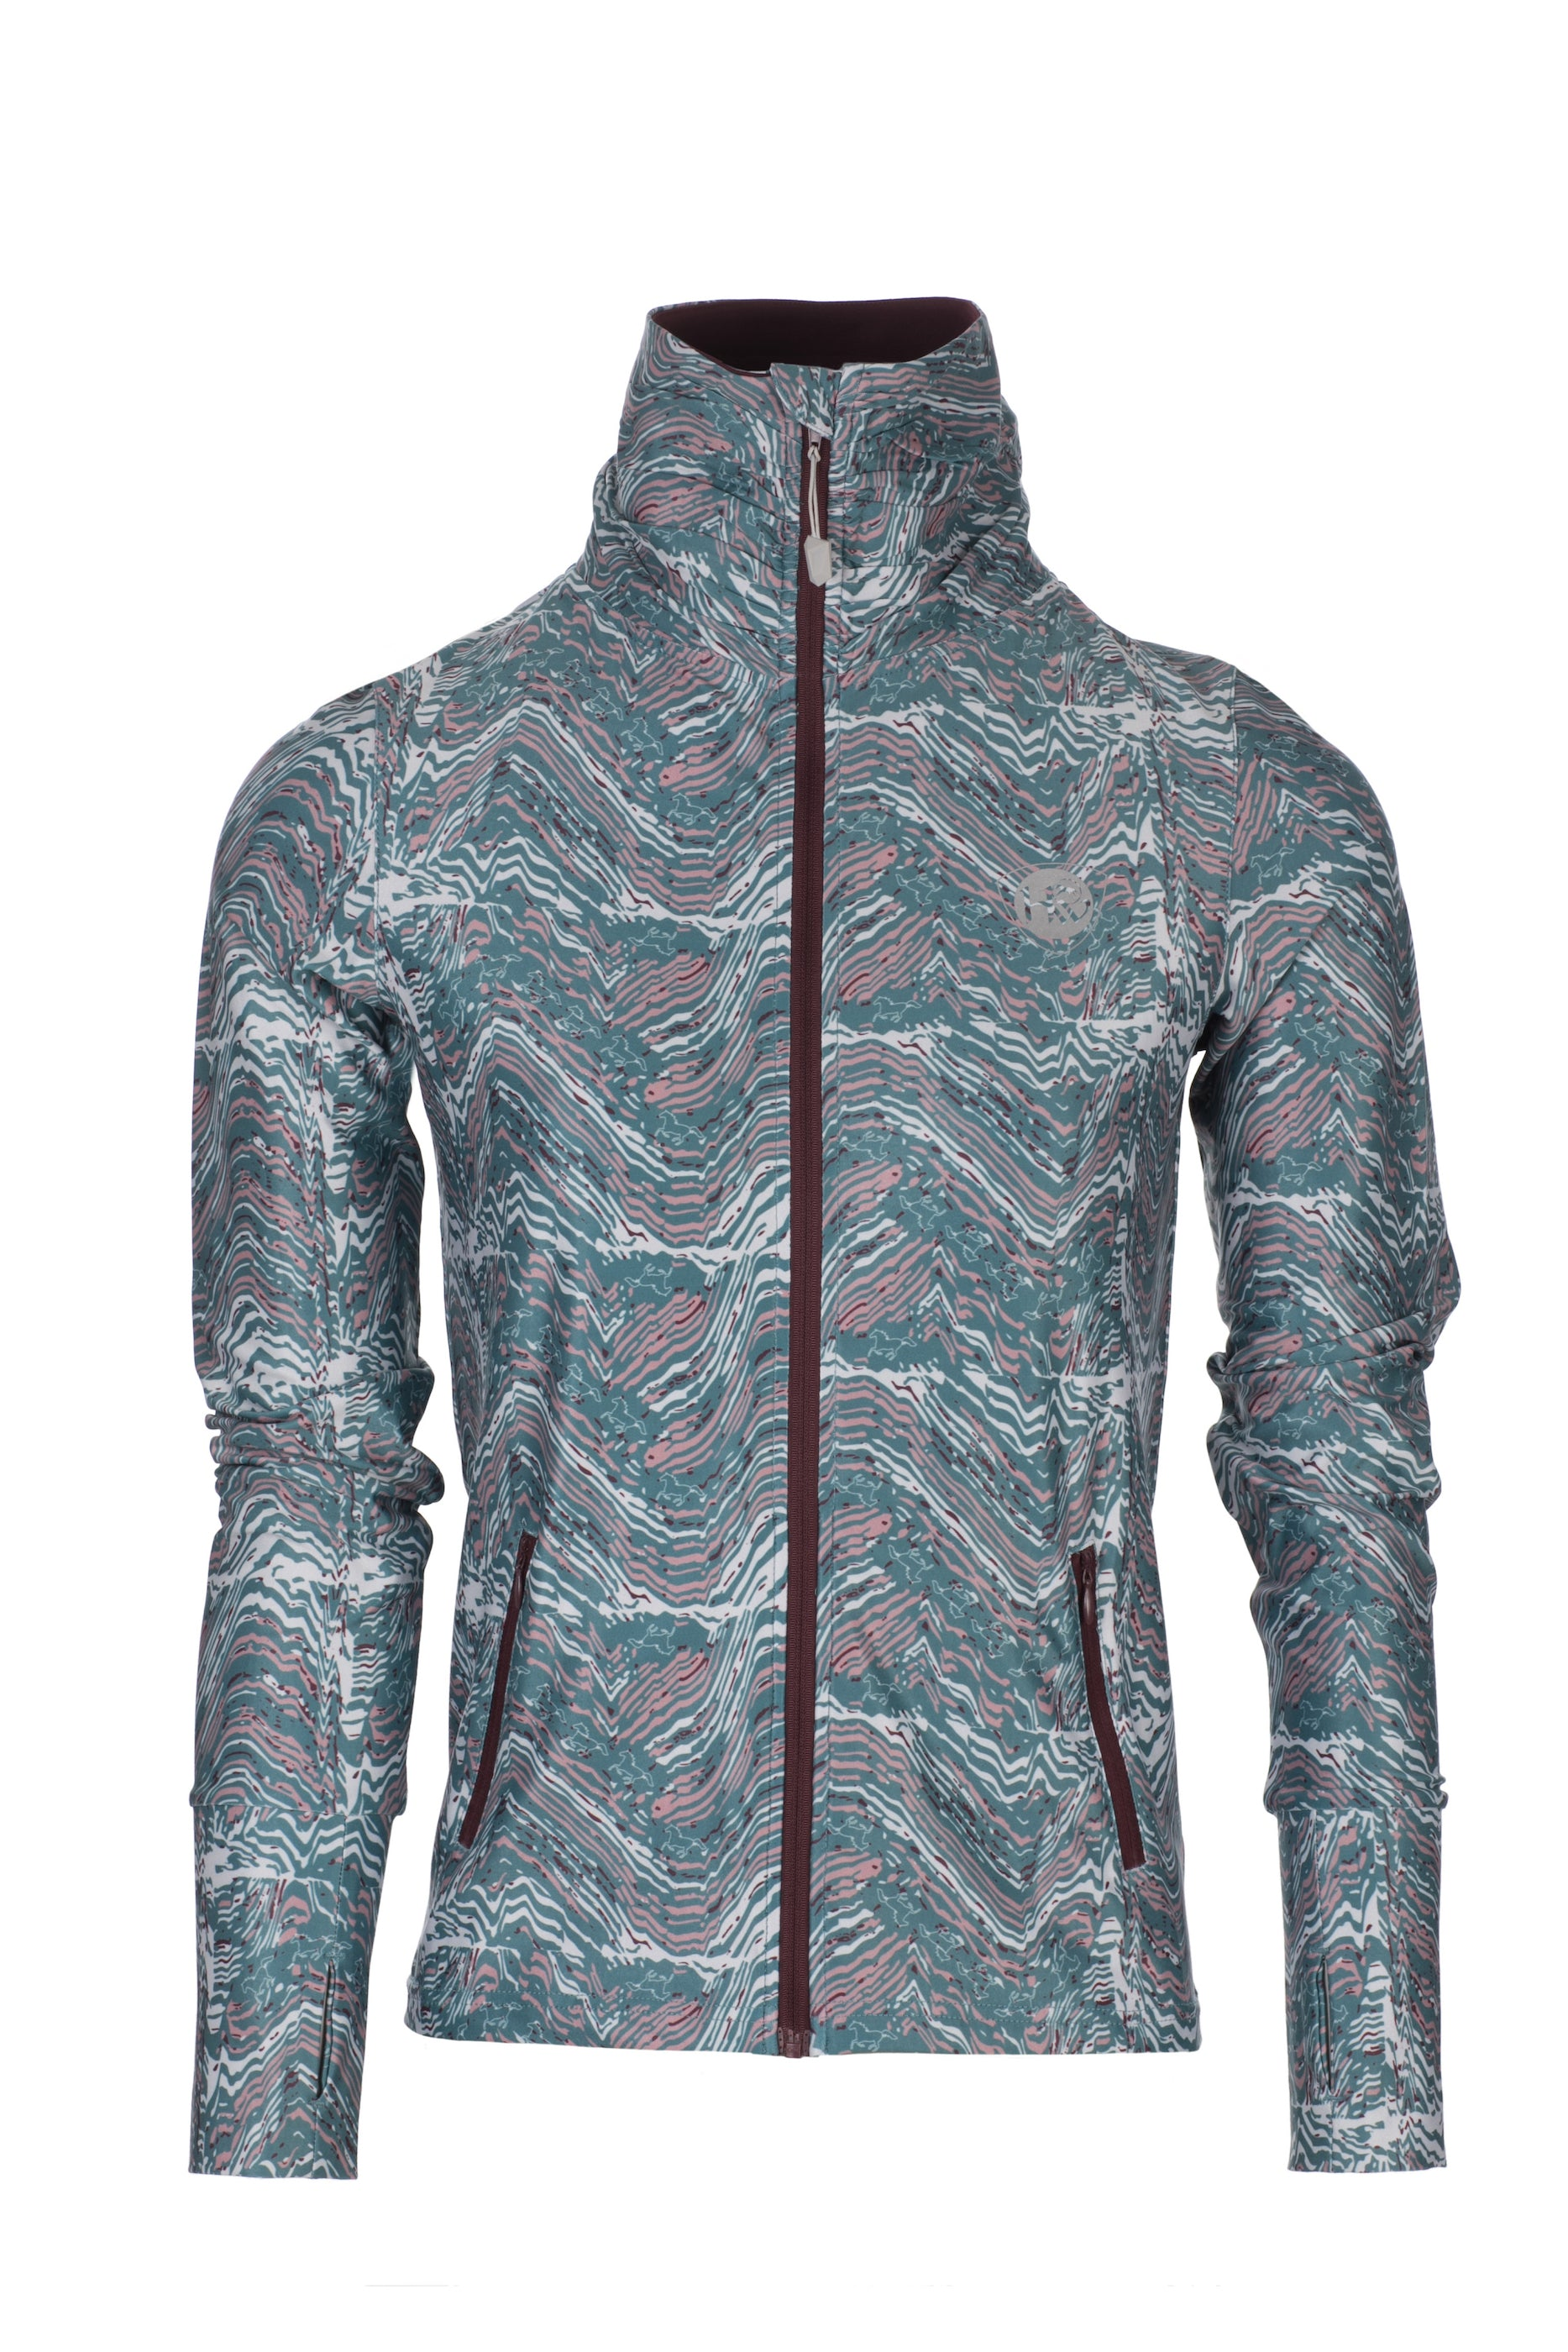 With a super trendy vibe and multi-sport functionality, the Horseware Ireland Technical Full Zip Jacket is totally dialled in, and even has an exclusive Horseware Marble Print!!!  Full front zip Flattering fit Super breathable / wicking and antibacterial 95% Polyester, 5% Spandex Machine washable